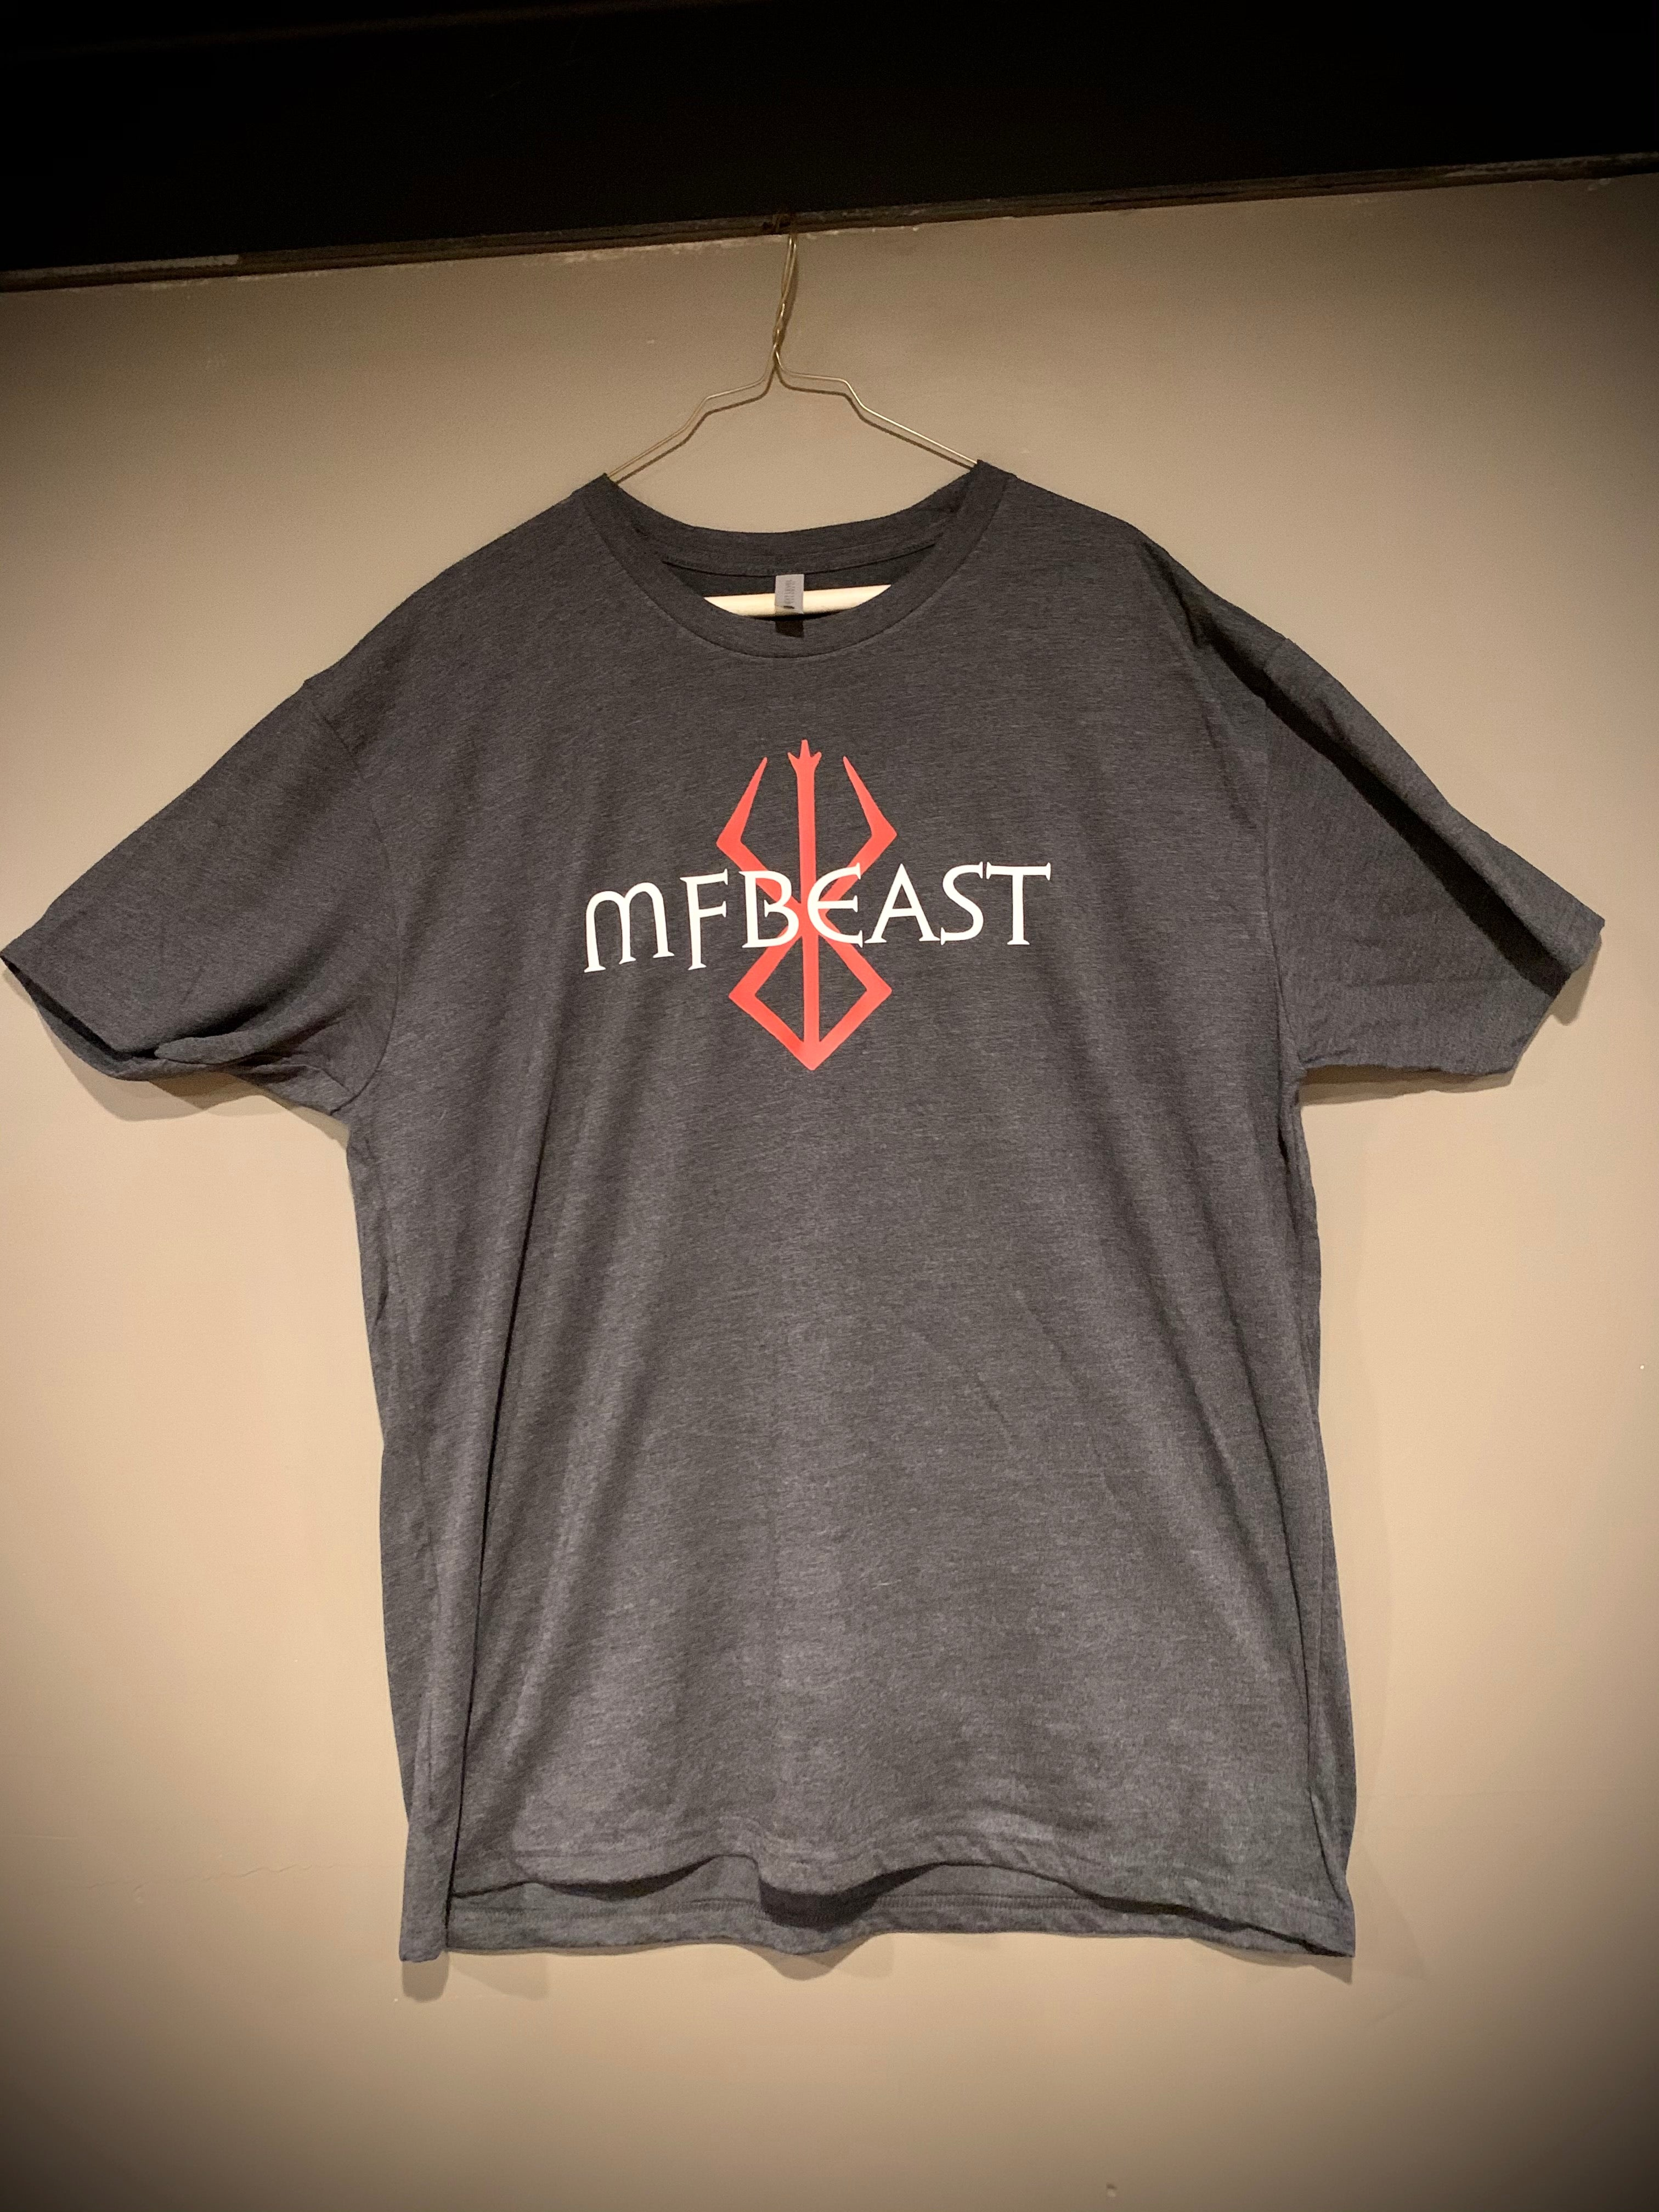 MFBEAST Limited Edition